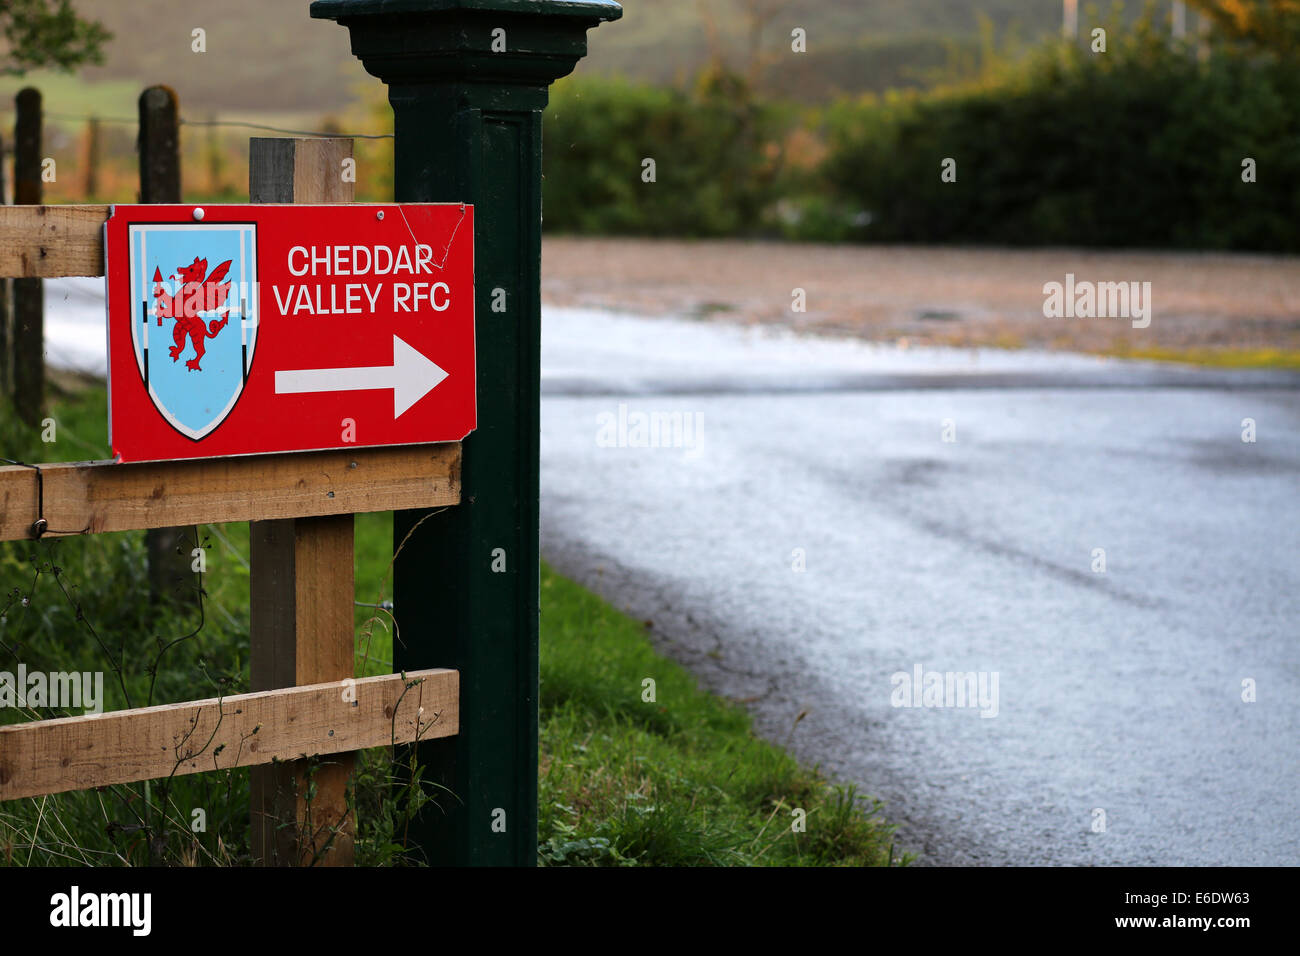 Direction sign to Cheddar Valley RFC Rugy club car park, August 2014 - Stock Image